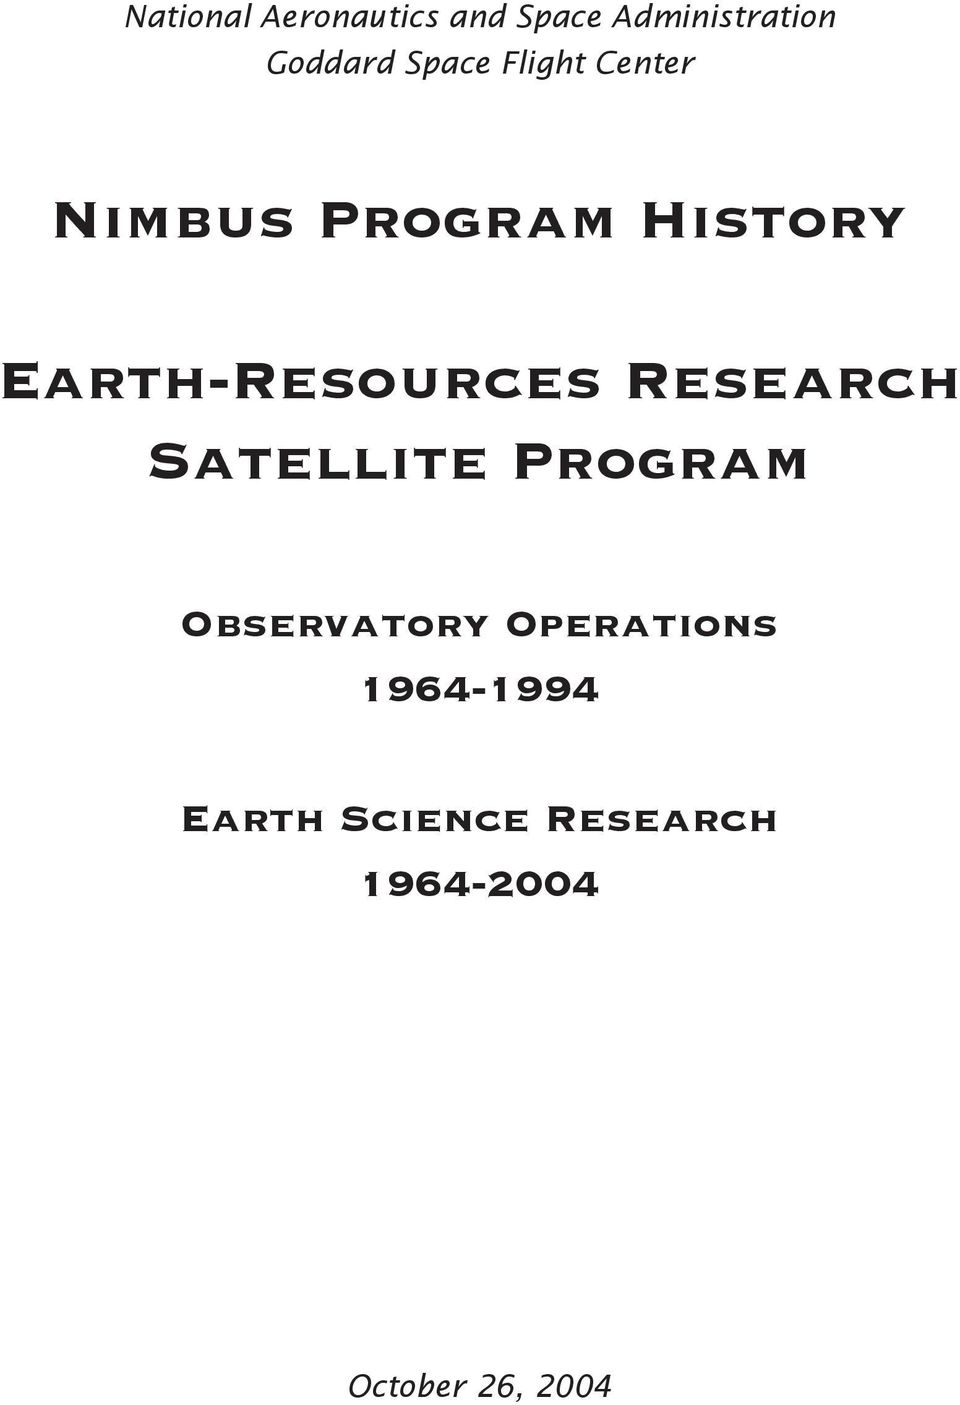 Earth-Resources Research Satellite Program Observatory